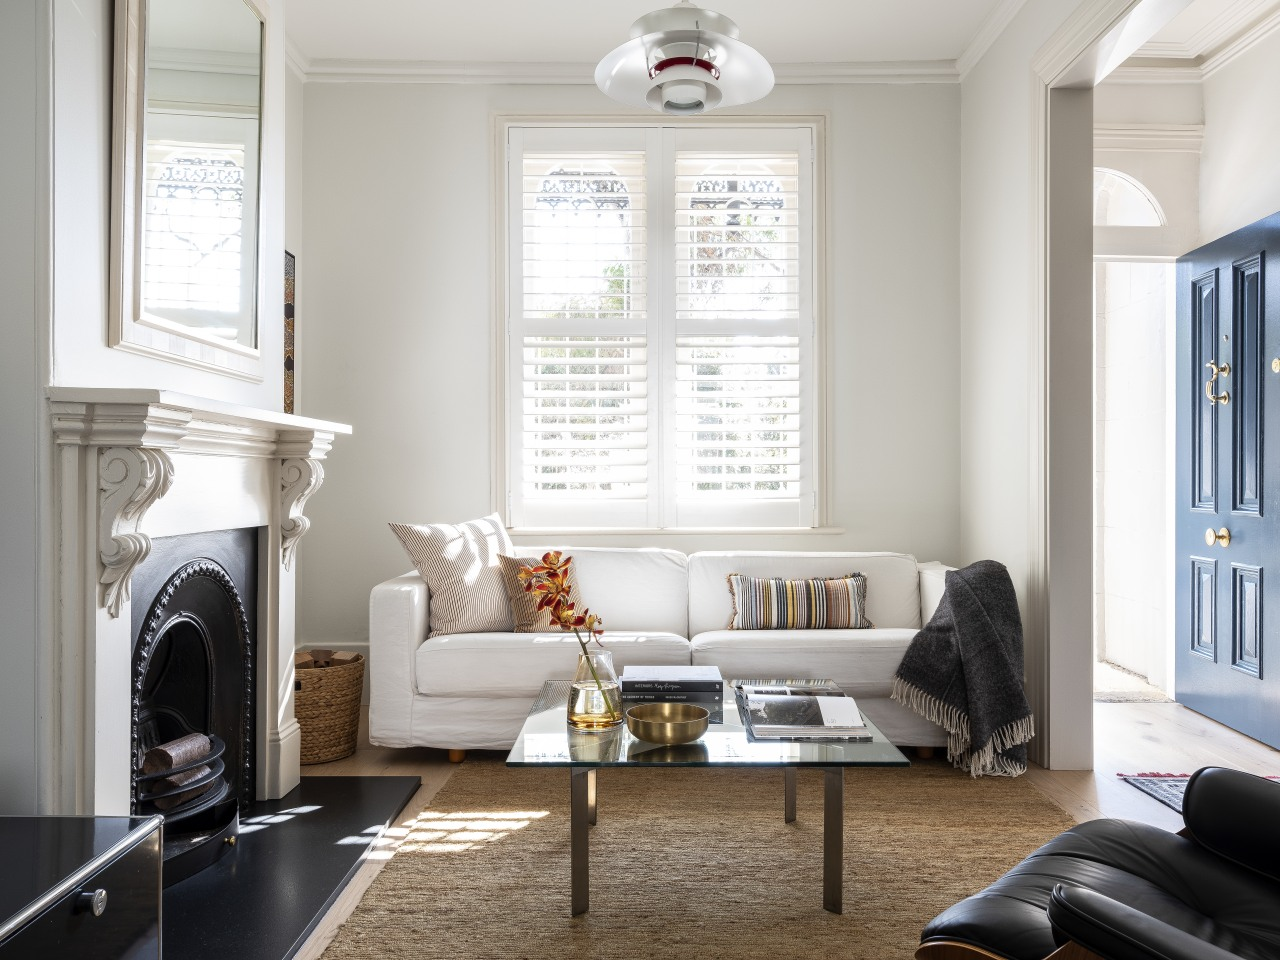 In this terrace home renovation, the formal lounge